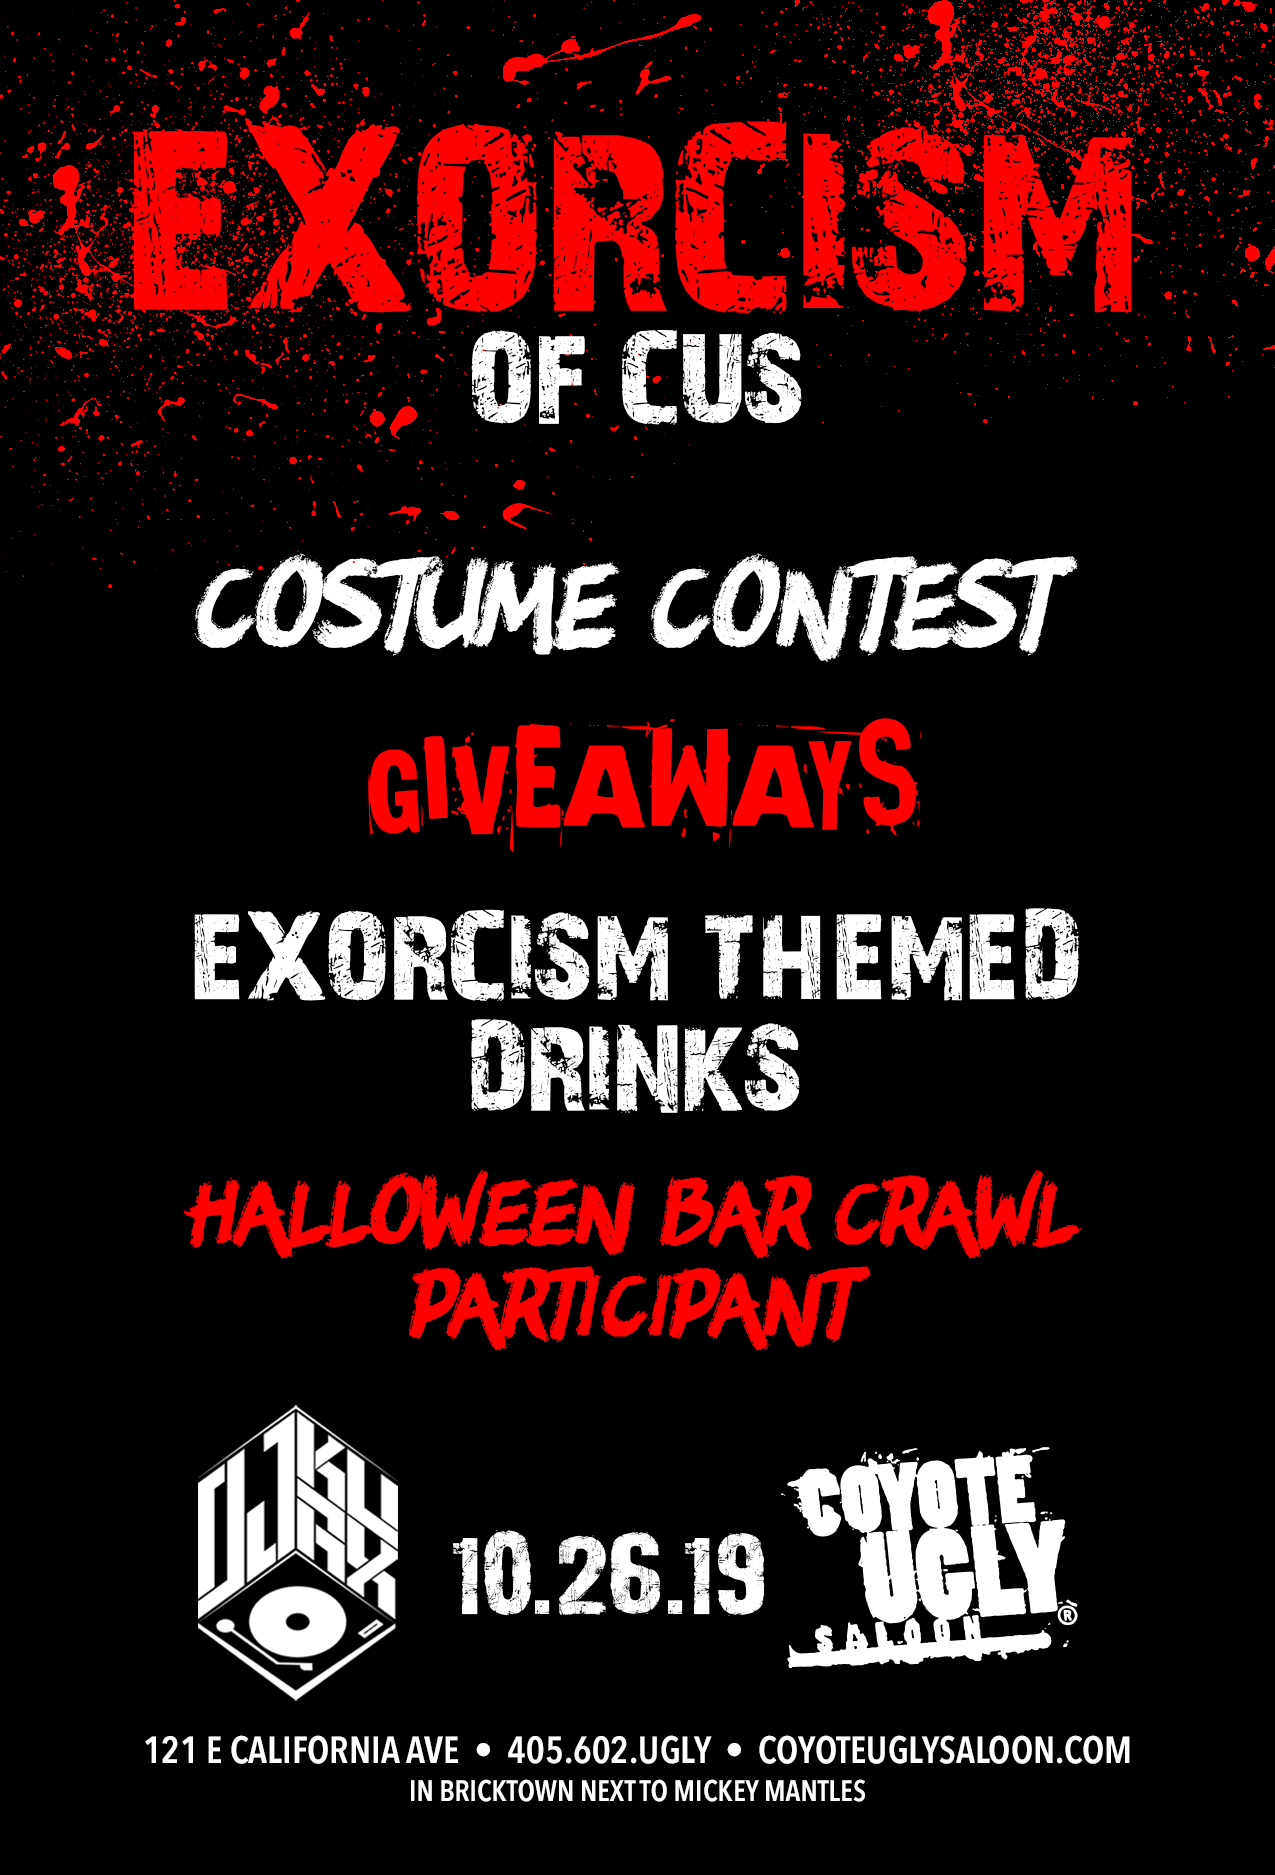 Exorcism of CUS in Oklahoma City on October 26, 2019